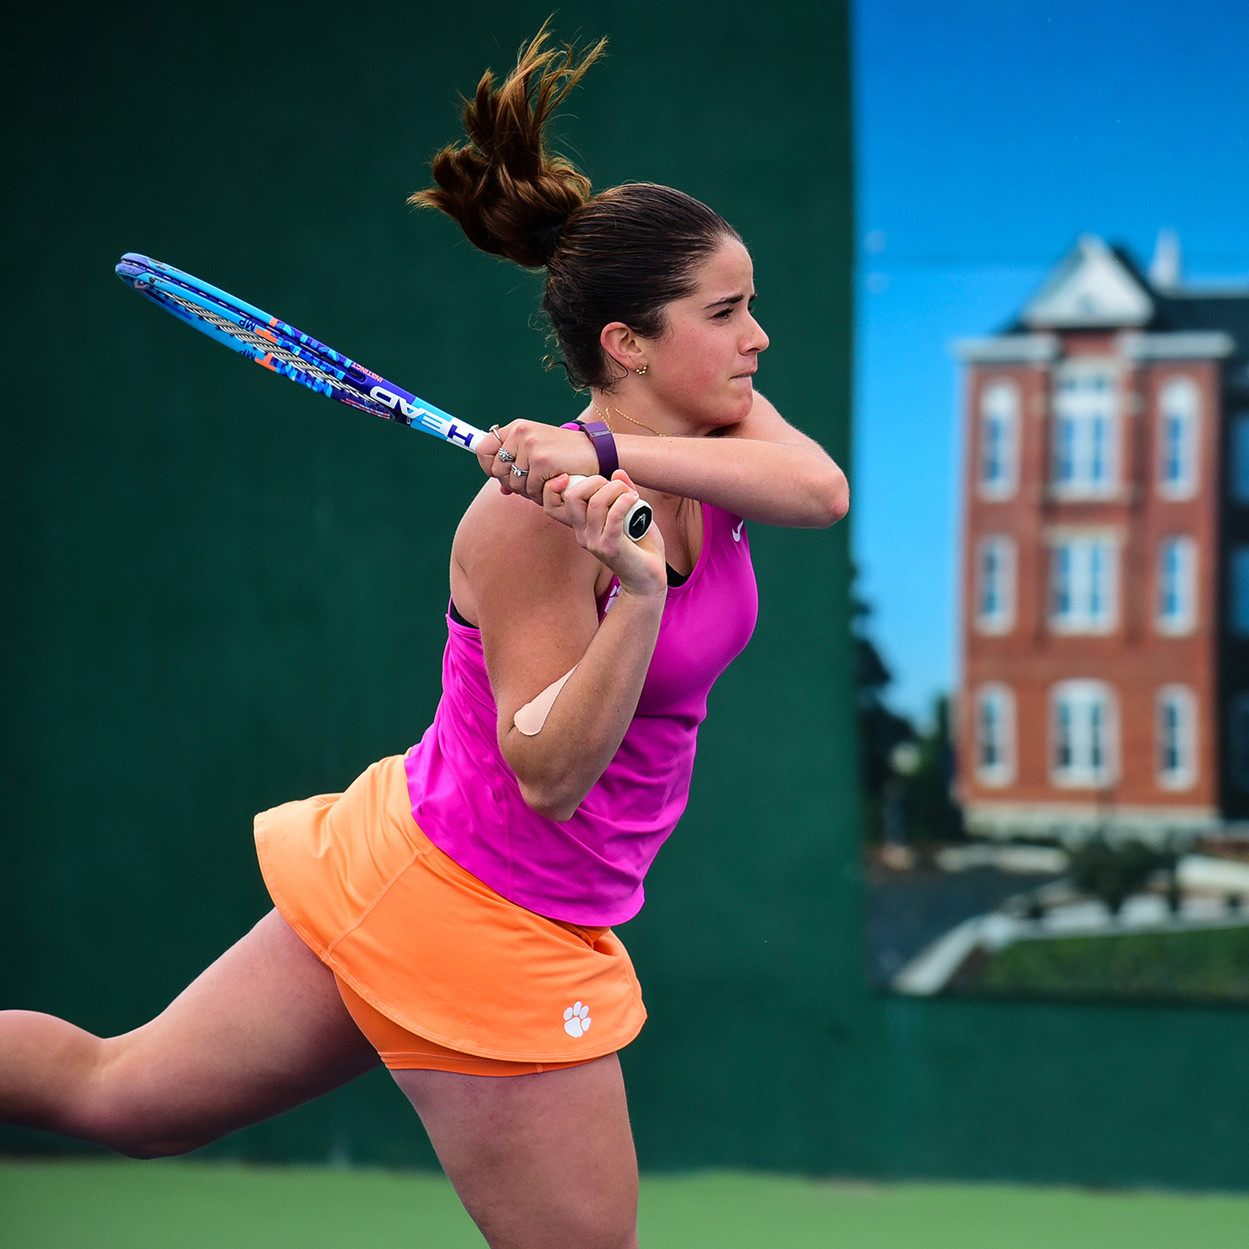 Tigers Fall to Notre Dame in ACC Championships Second Round